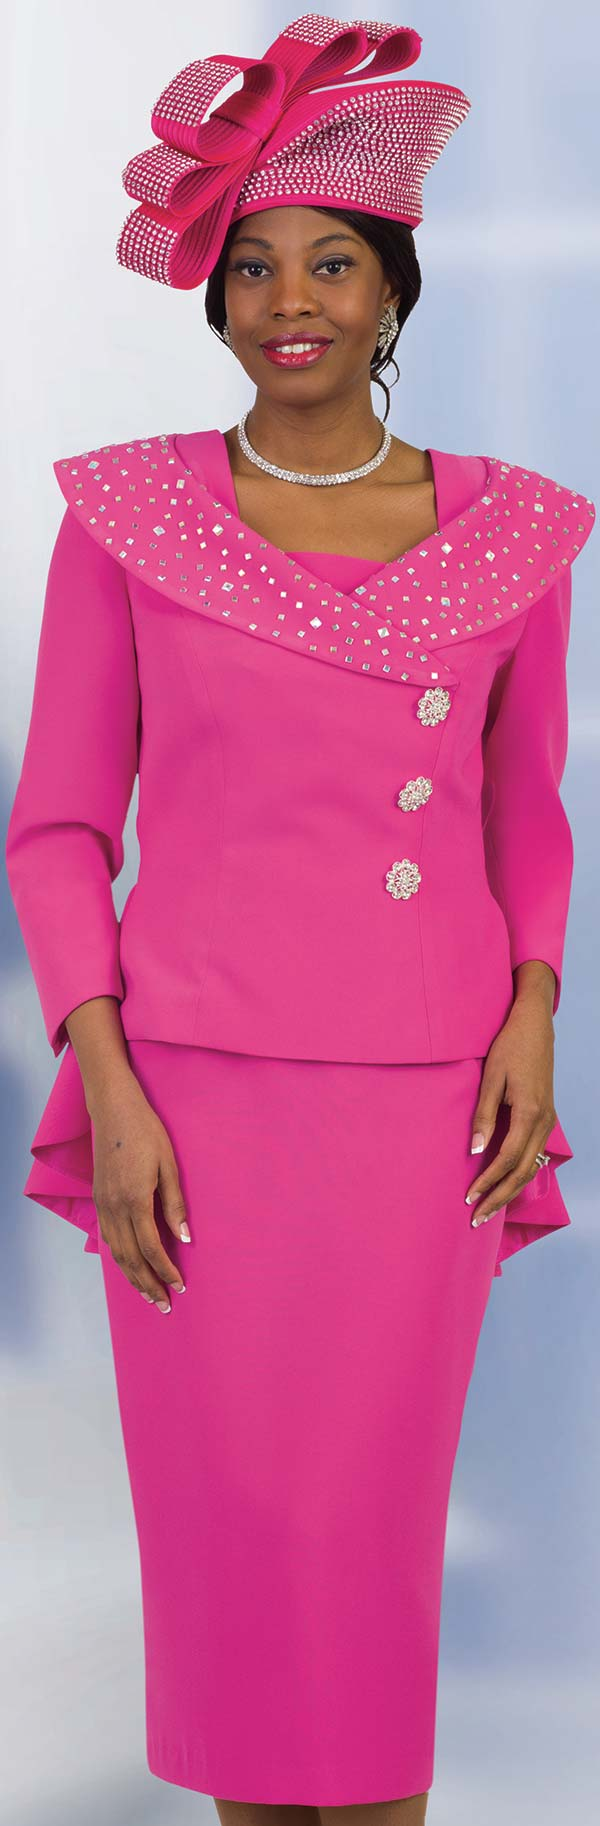 Lily and Taylor 4539 - French Crepe Fabric Ladies Skirt Suit With Portrait Collar Peplum Jacket